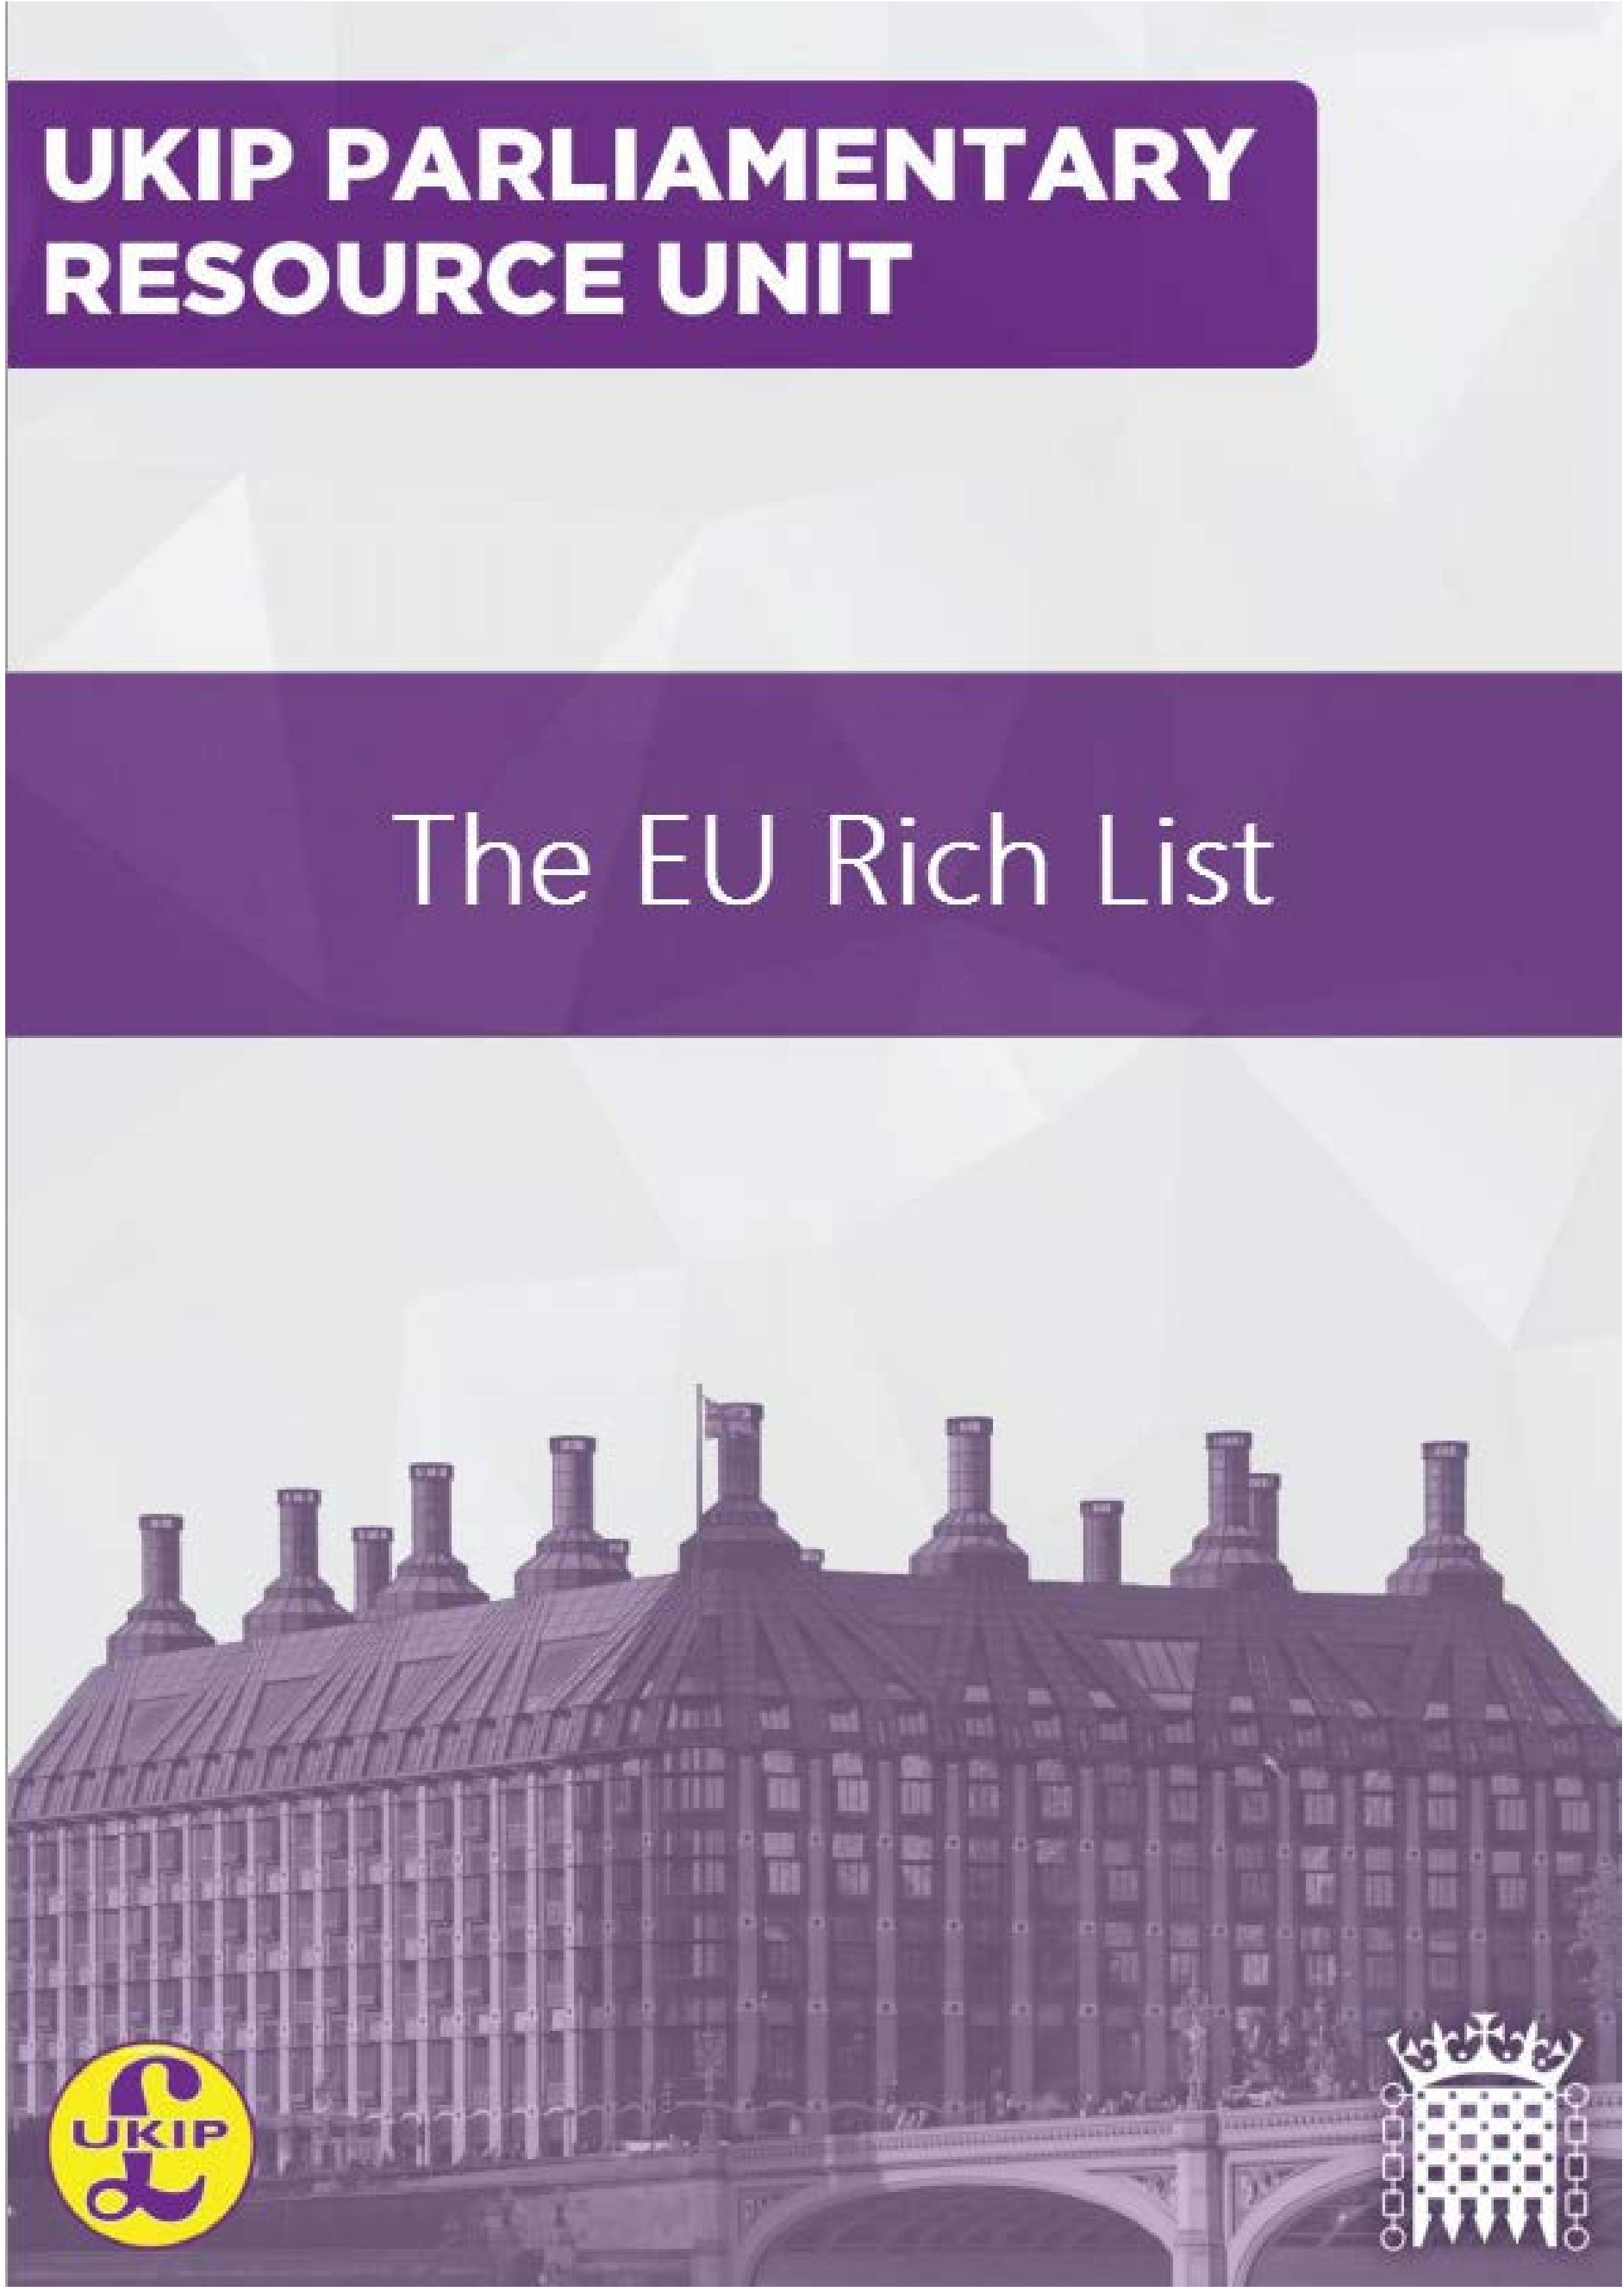 The_EU_Rich_List-page-001.jpg